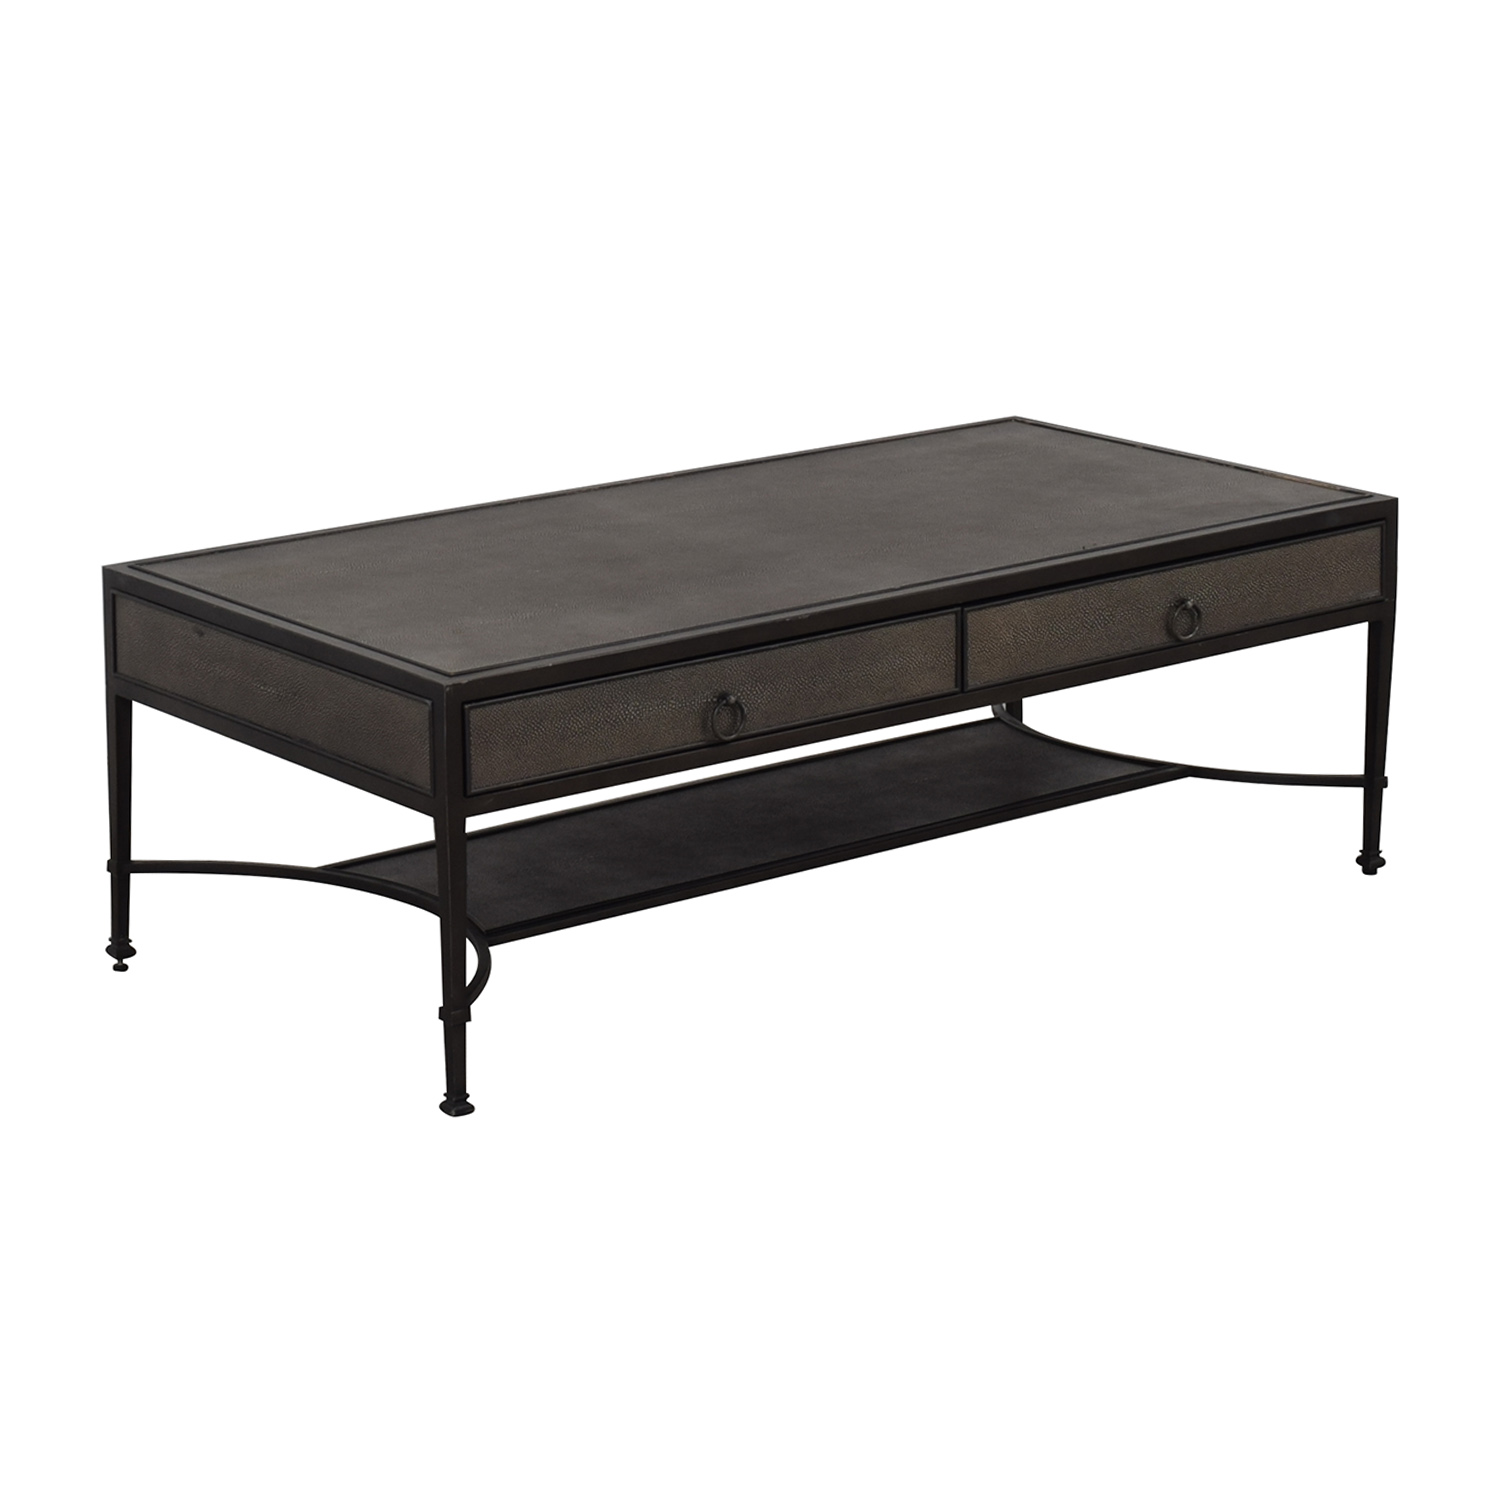 Restoration Hardware Restoration Hardware Coffee Table Dark Grey